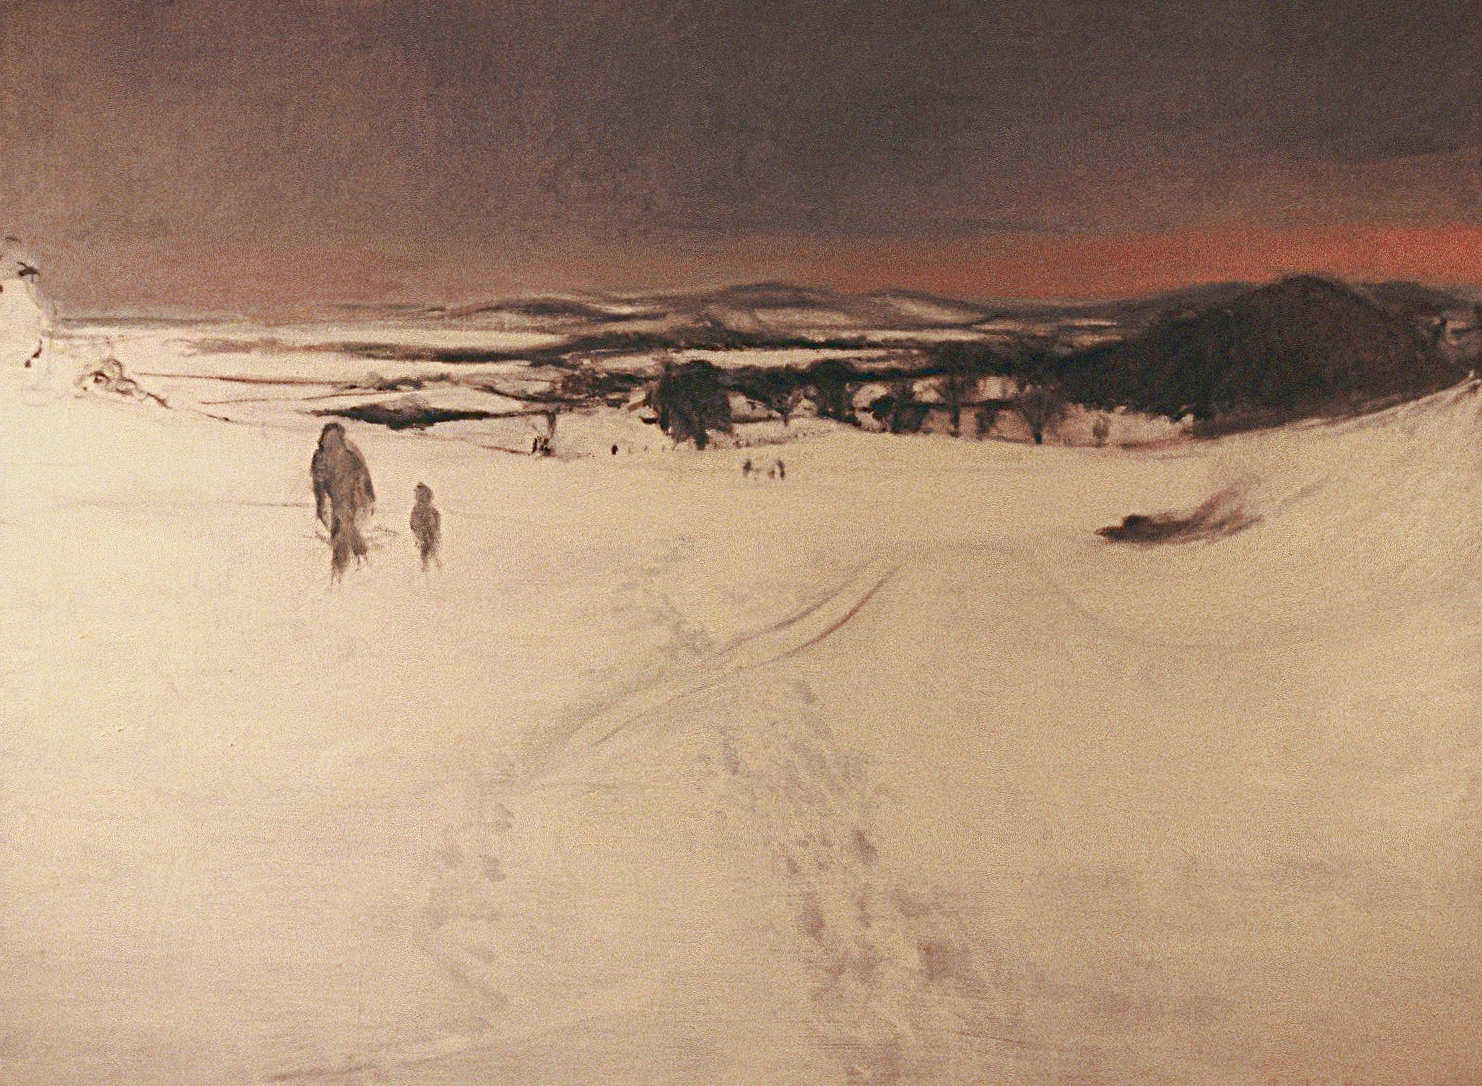 Tracks in Snow, 98 x 120 cm, oil on linen, Private Collection